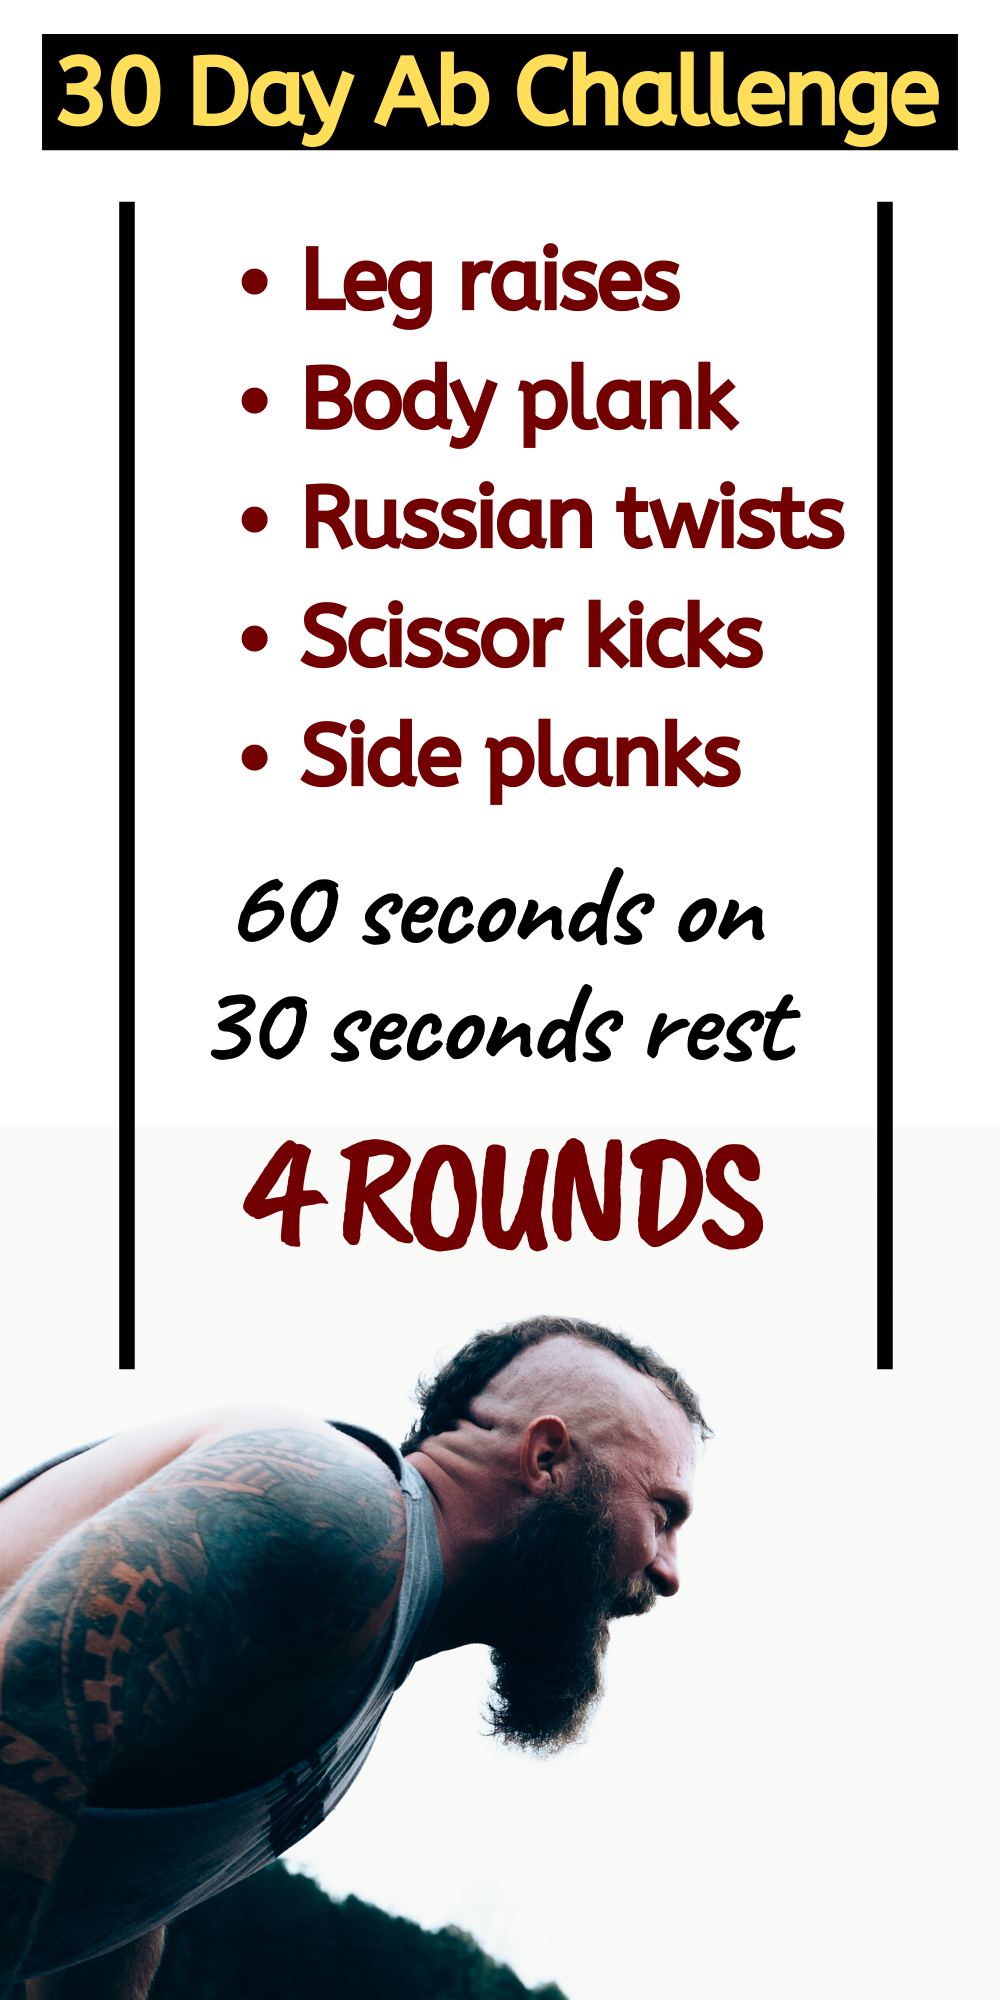 30 Day Ab Challenge: Push Yourself For A Month | 30 day ab ... Oblique Exercises Abe